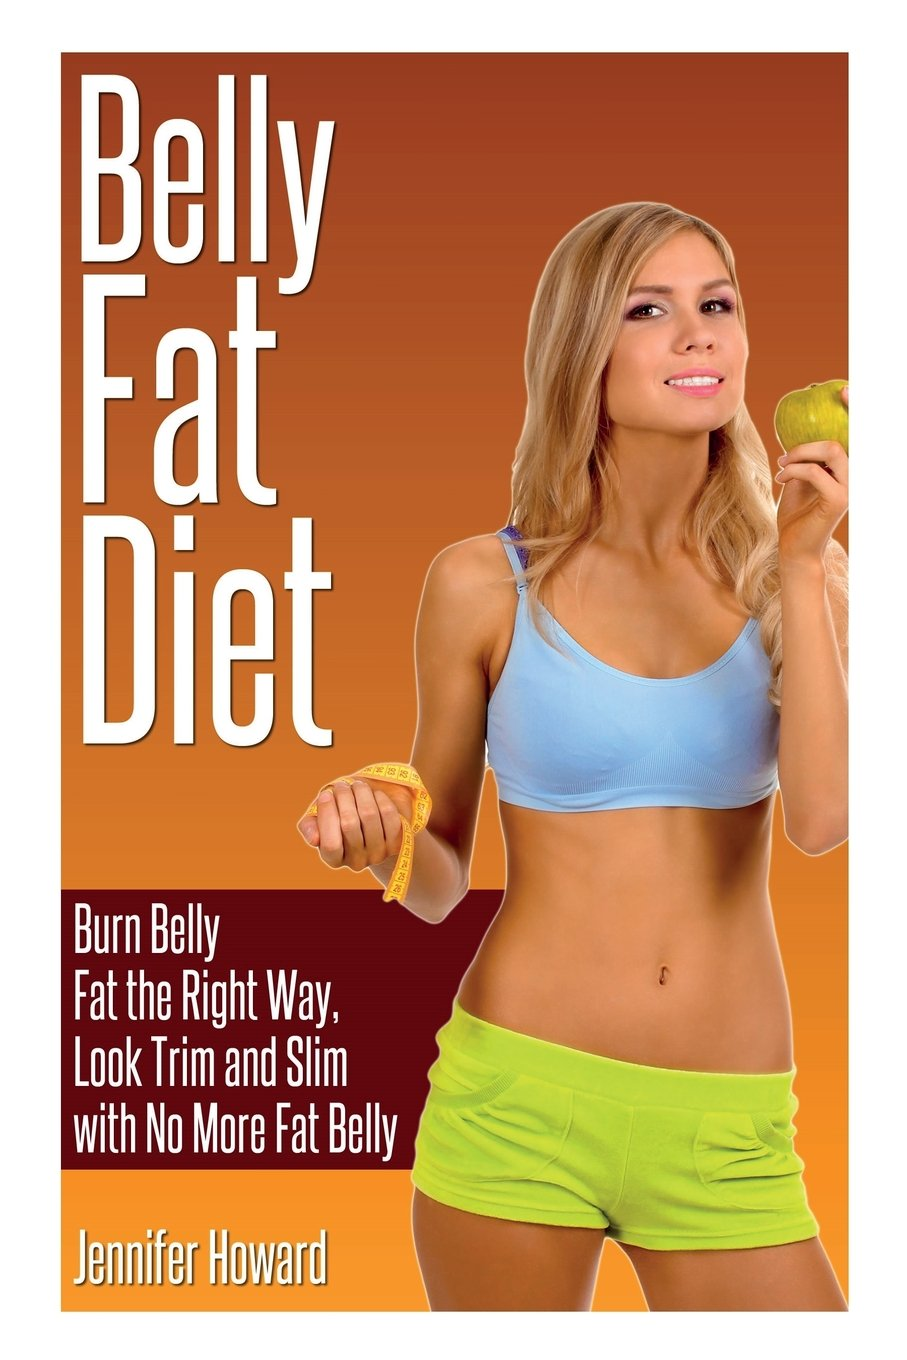 Read Online Belly Fat Diet: Burn Belly Fat the Right Way, Look Trim and Slim with No More Fat Belly pdf